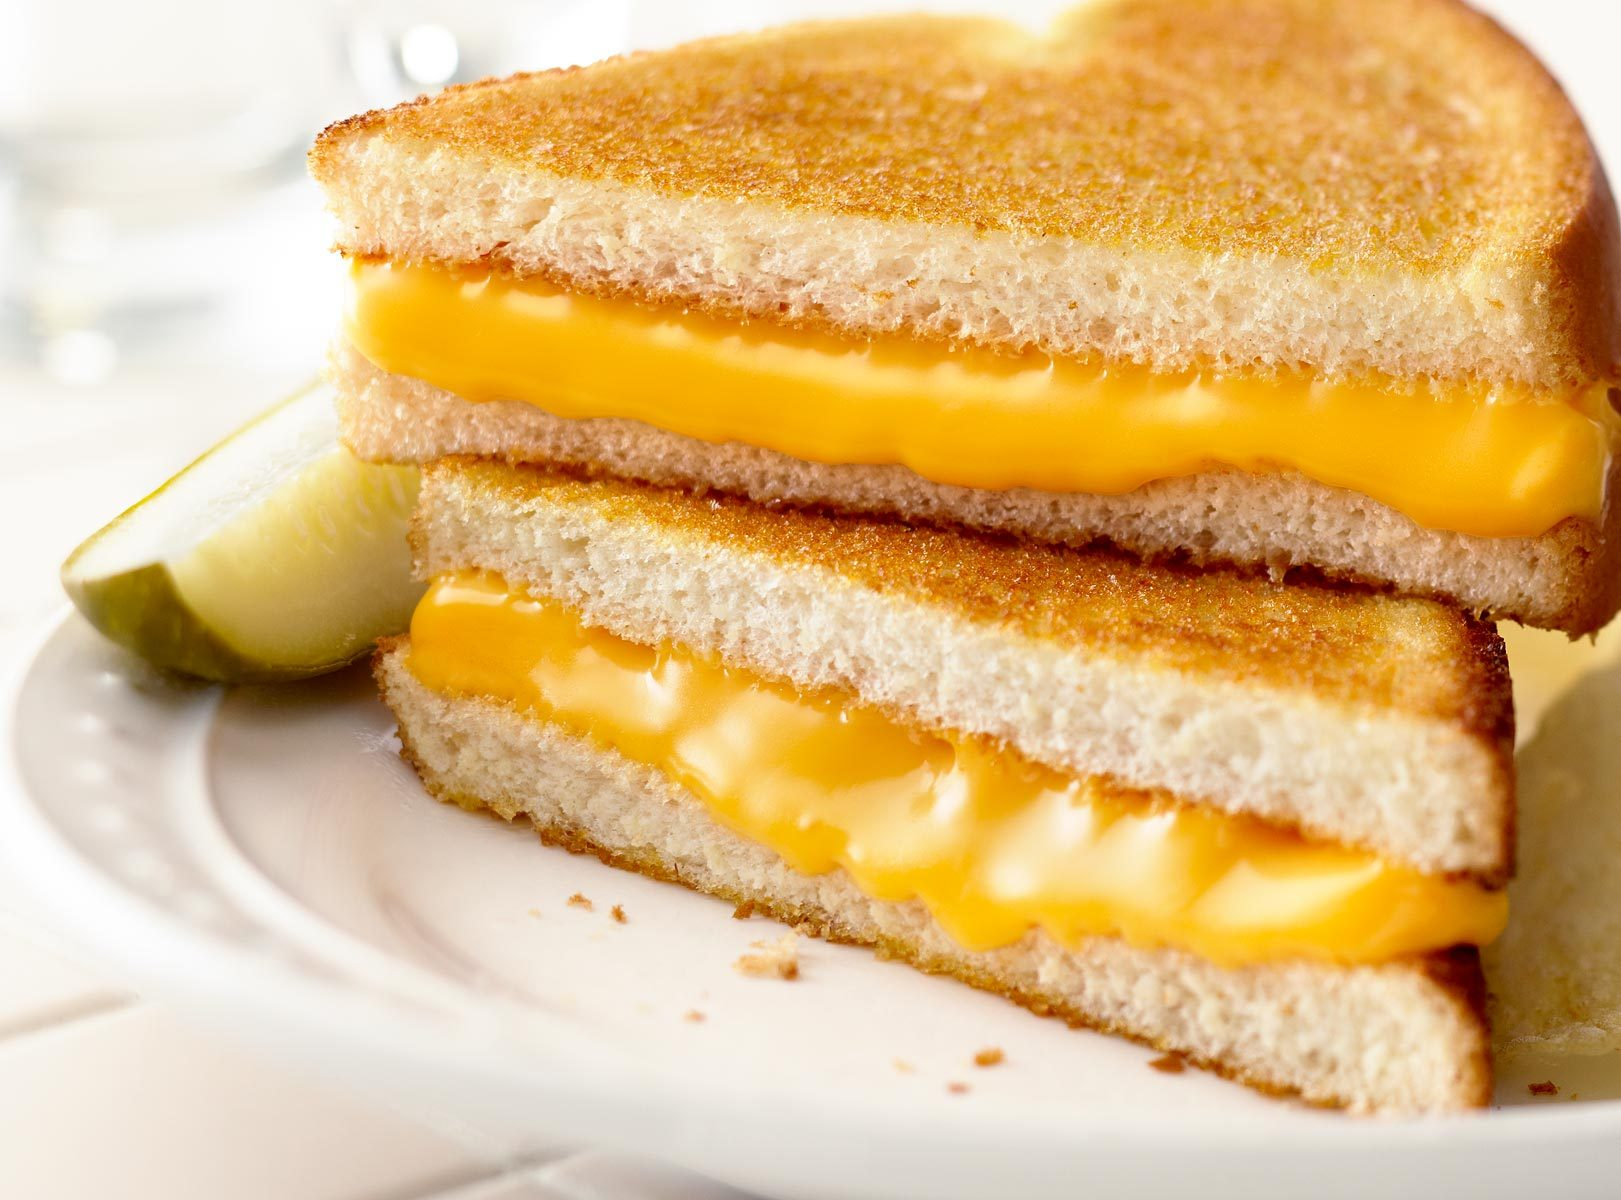 grilled cheese essay An electric frying pan, 2 slices of bread (preferably white), (softened) butter, and some cheese of your choice step 1 plug in and pre-heat the electric frying pan to 400 degrees fahrenheit.